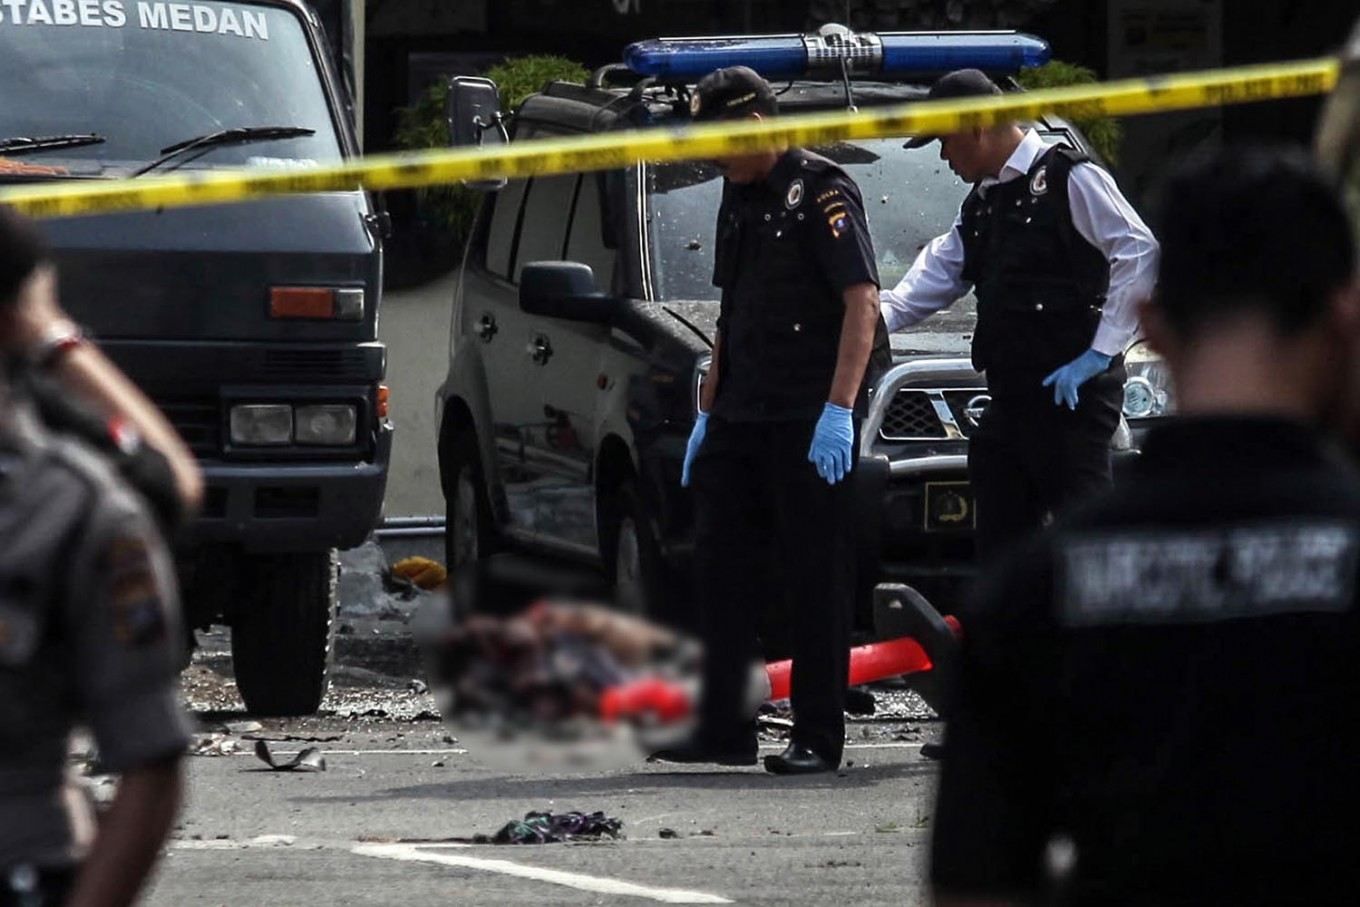 24-year-old man behind suicide bombing at Medan Police HQ, police confirm